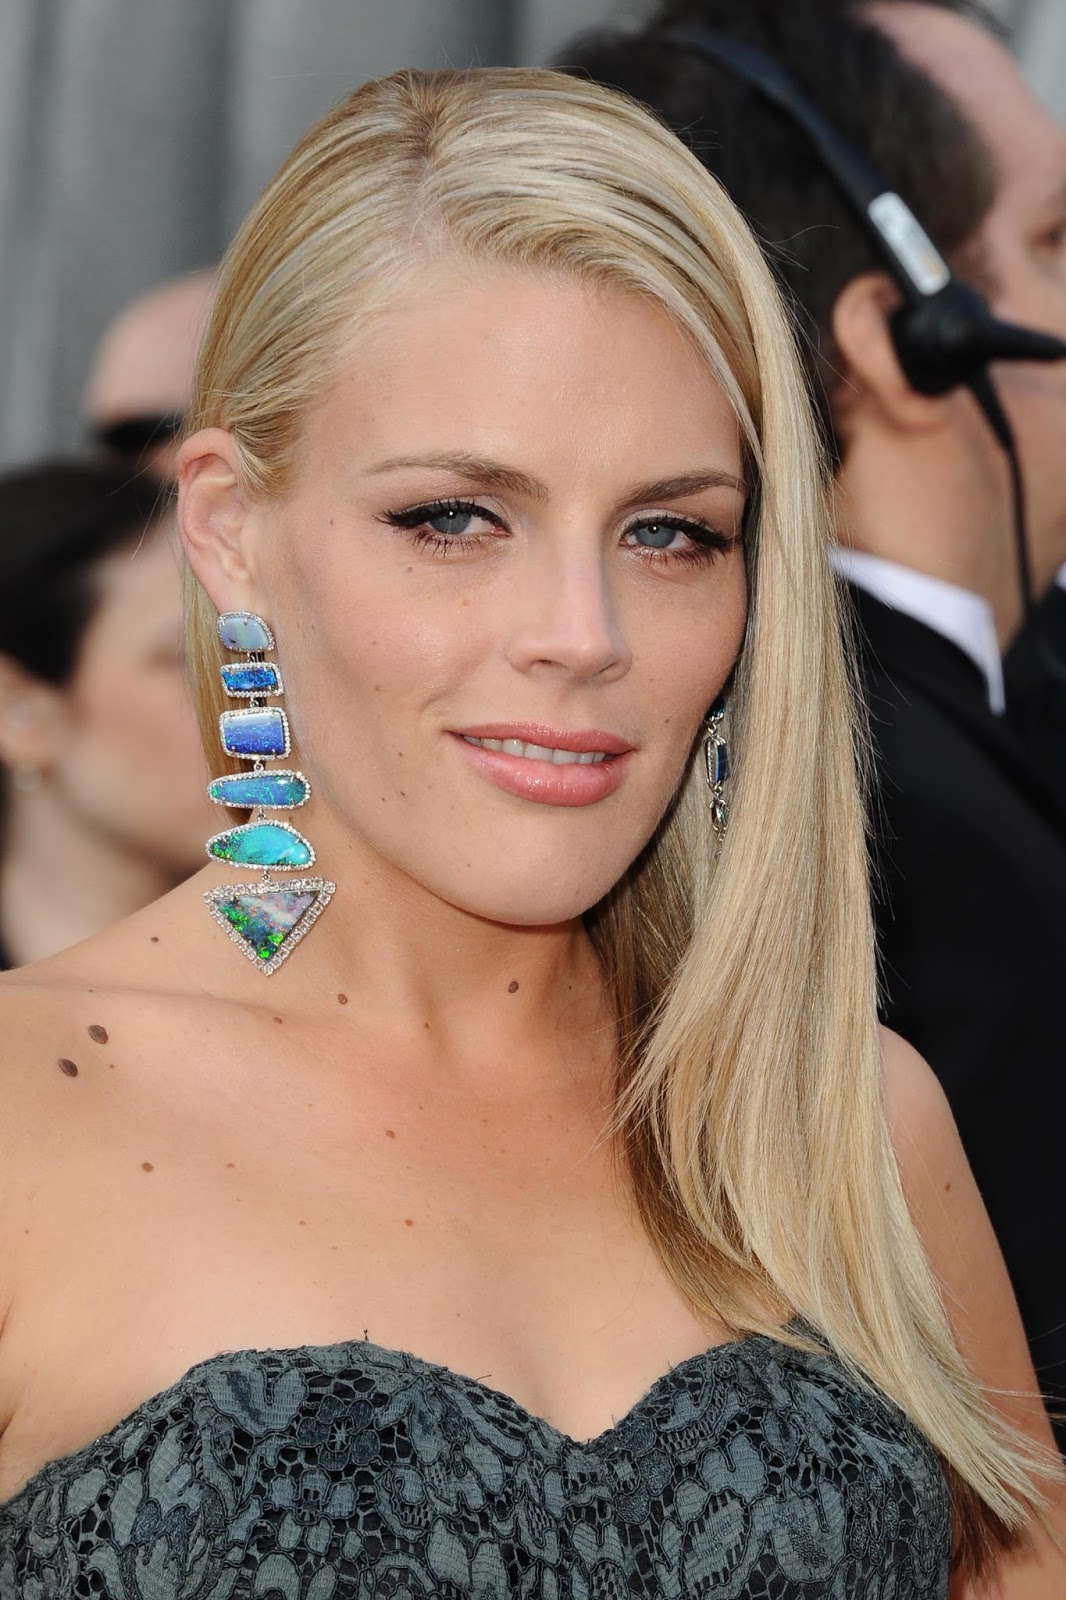 Busy Philipps Sexy HQ Photos at 84th Annual Academy Awards ~ HQ PIXZ